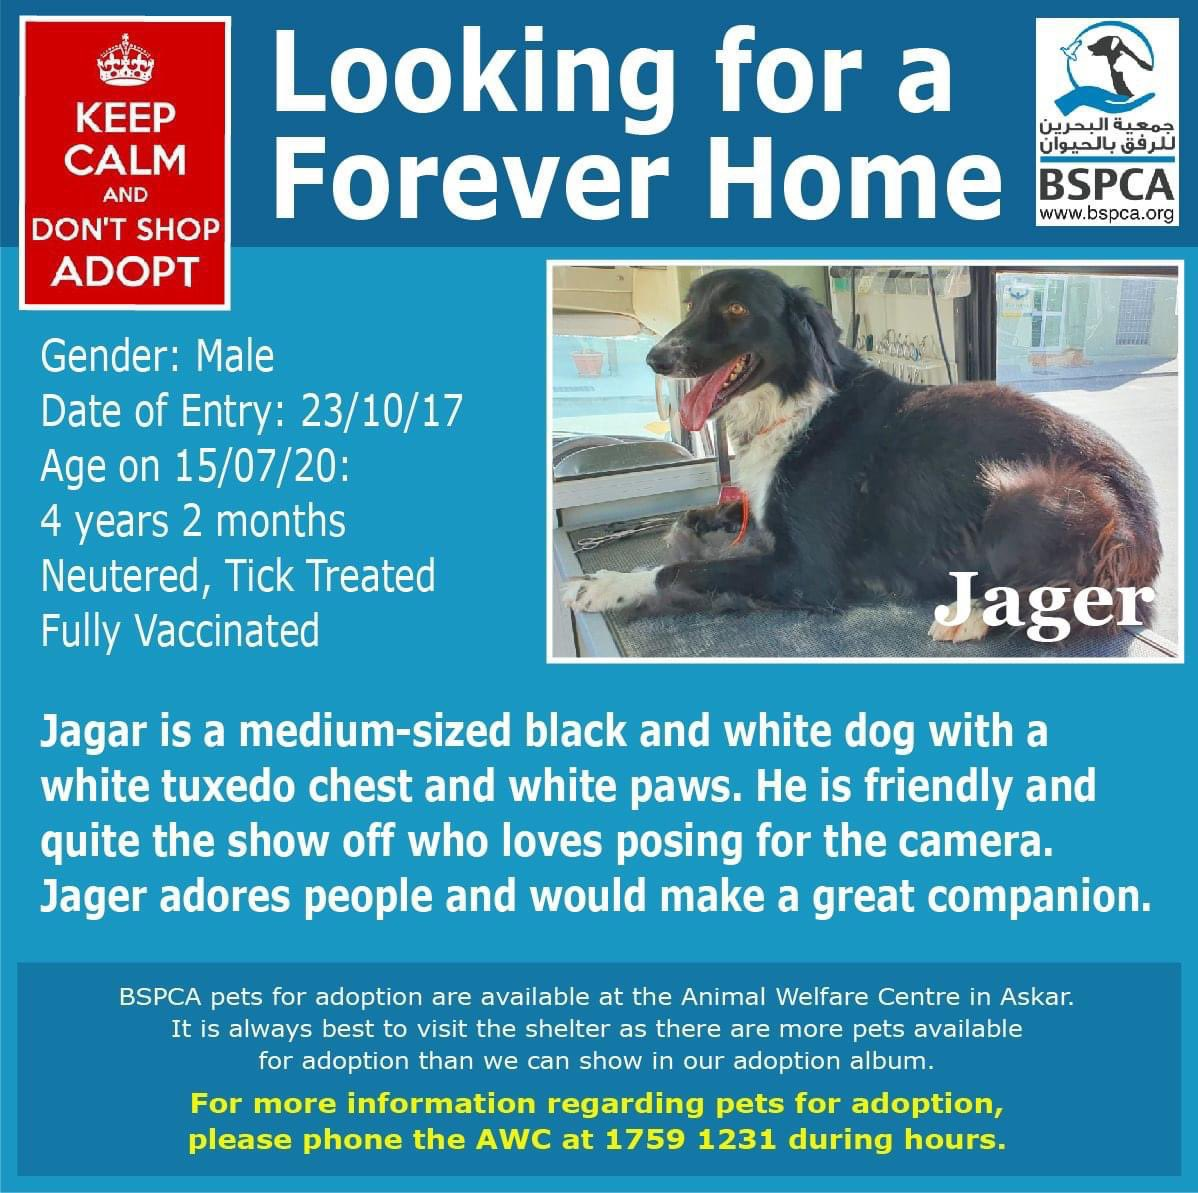 Jagar is a gentleman with impeccable lineage and wears a tuxedo to every event 🐶  Jagar would love a forever home where he could show you what a good boy he is.  Tel: 17591231  #Bahrain #Adopt #AnimalWelfare #dogs #cats #charity #spca #donate #volunteer #Gentleman